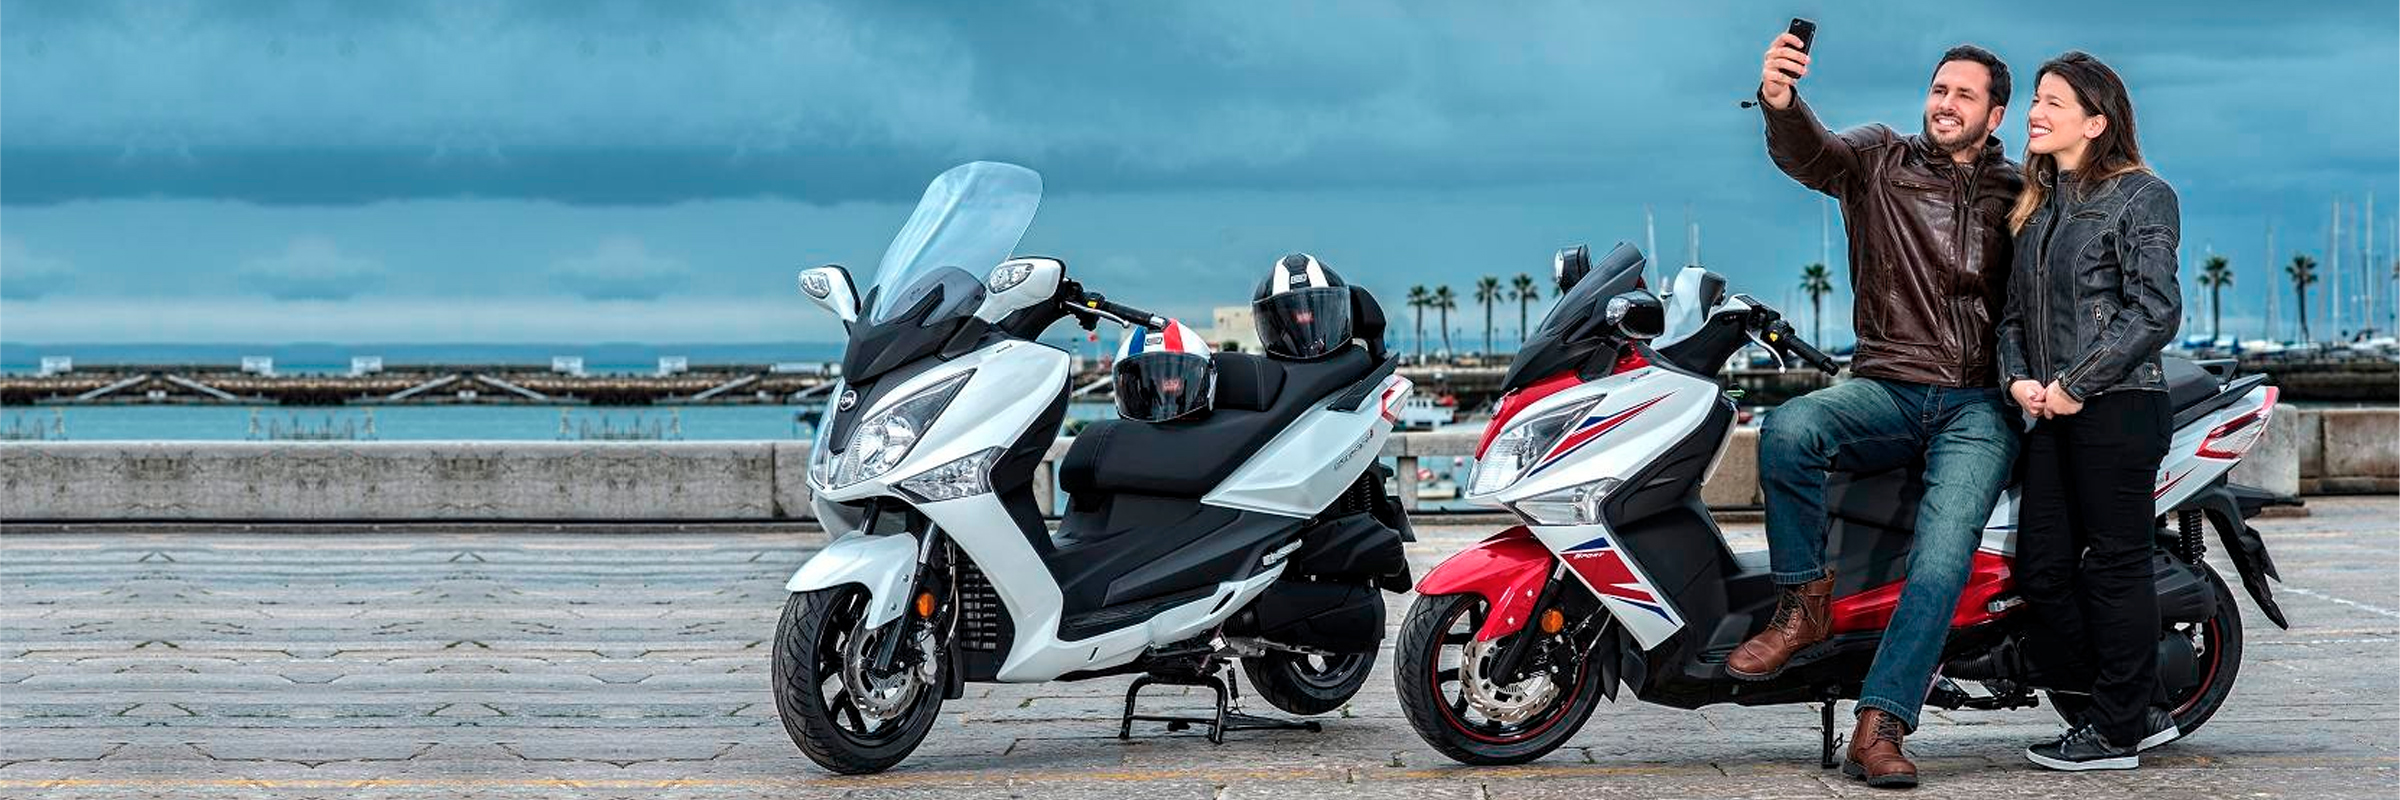 Maxsym 600i ABS - Ultimate Commuting